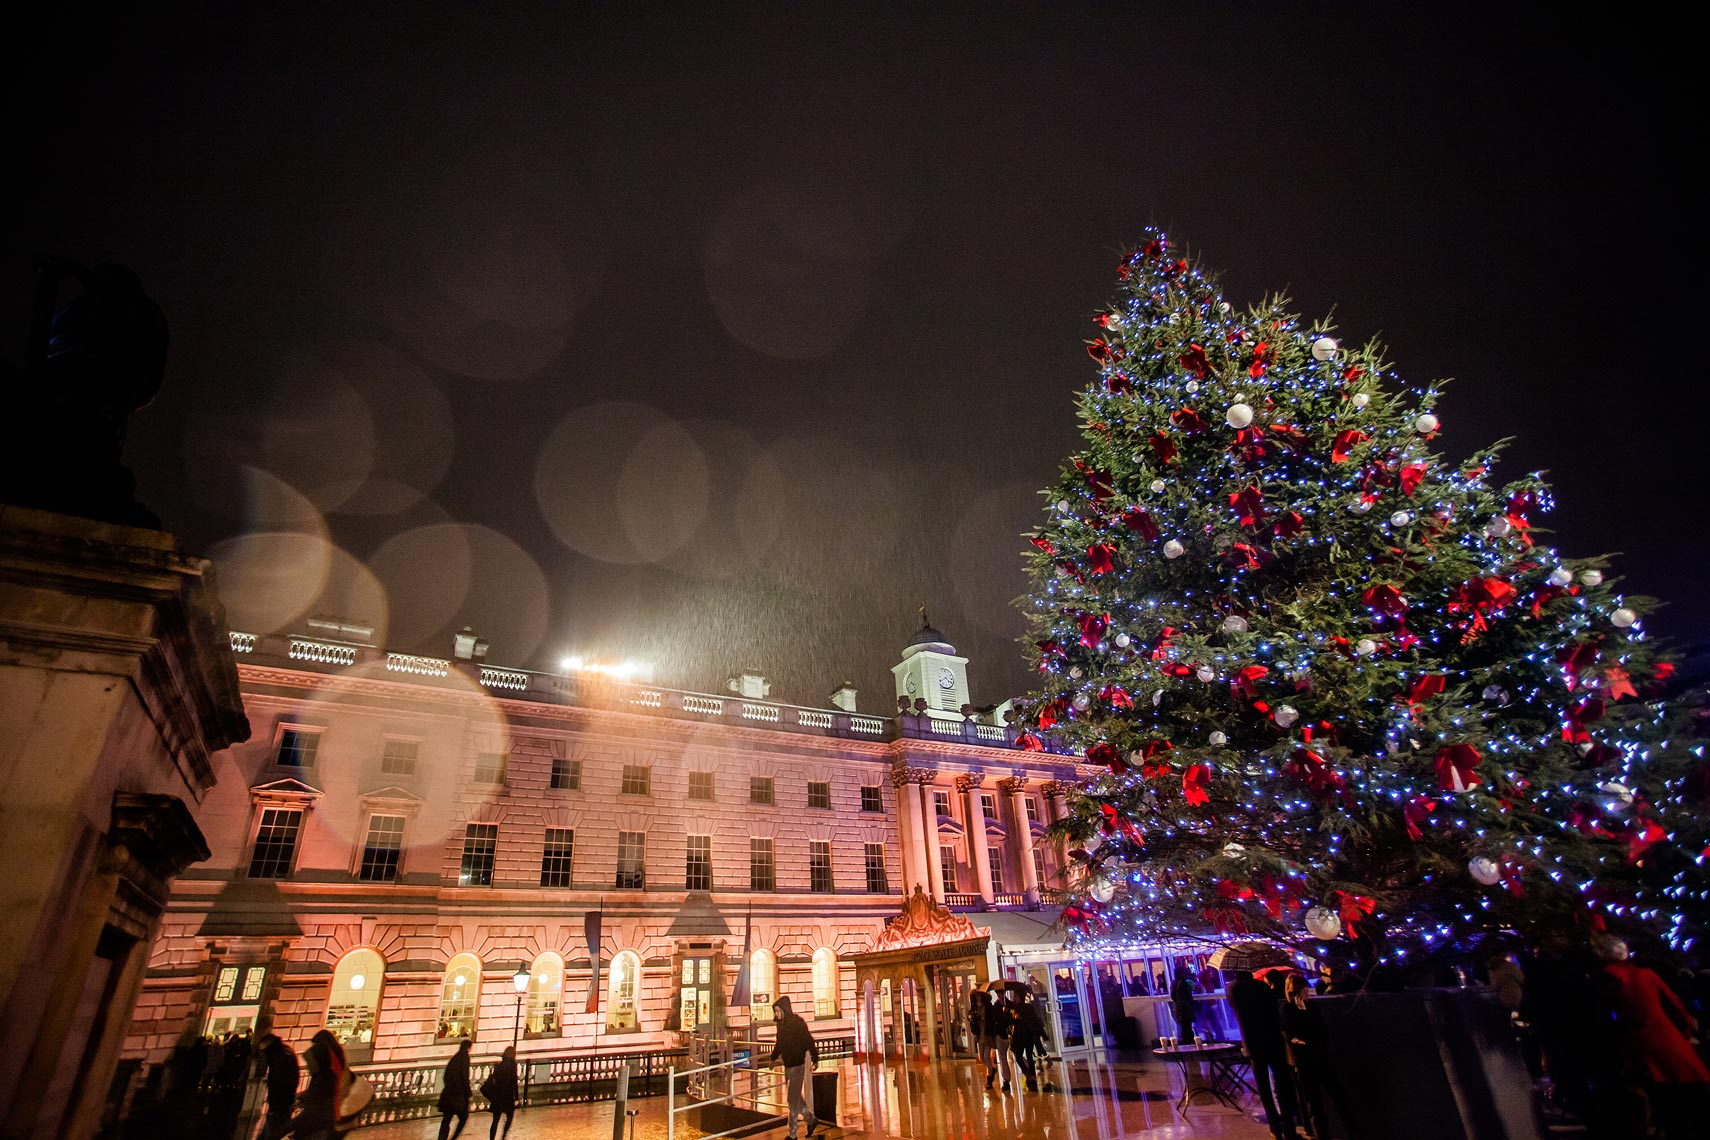 london1_somerset-house.jpg